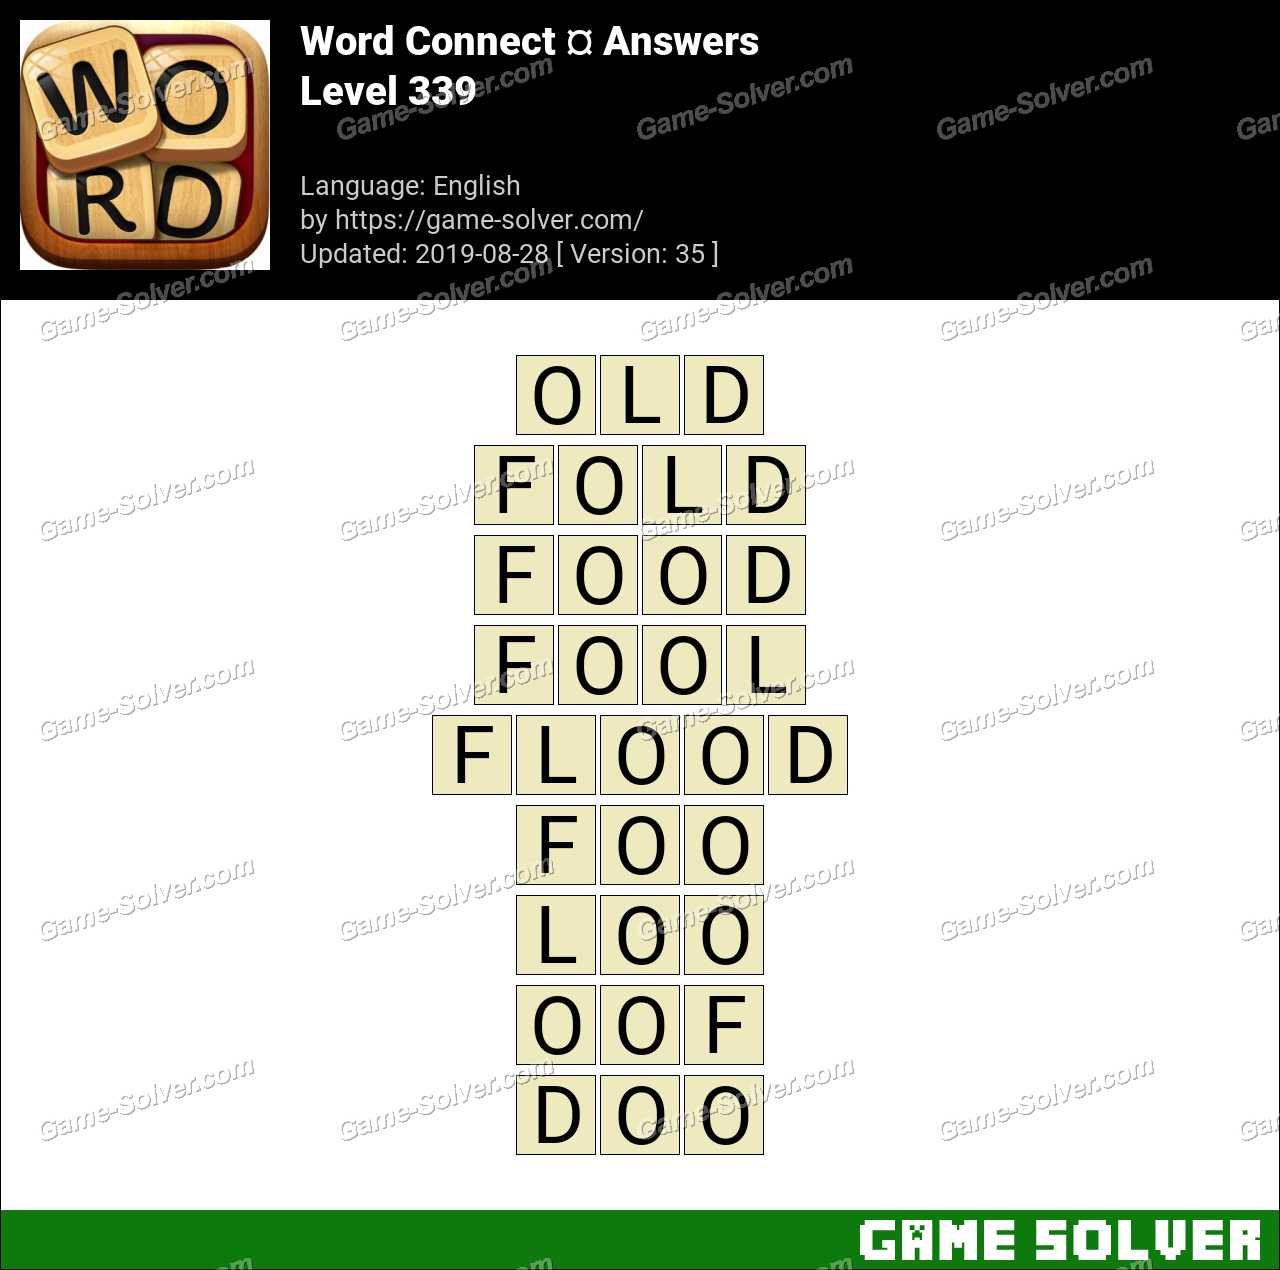 Word Connect Level 339 Answers